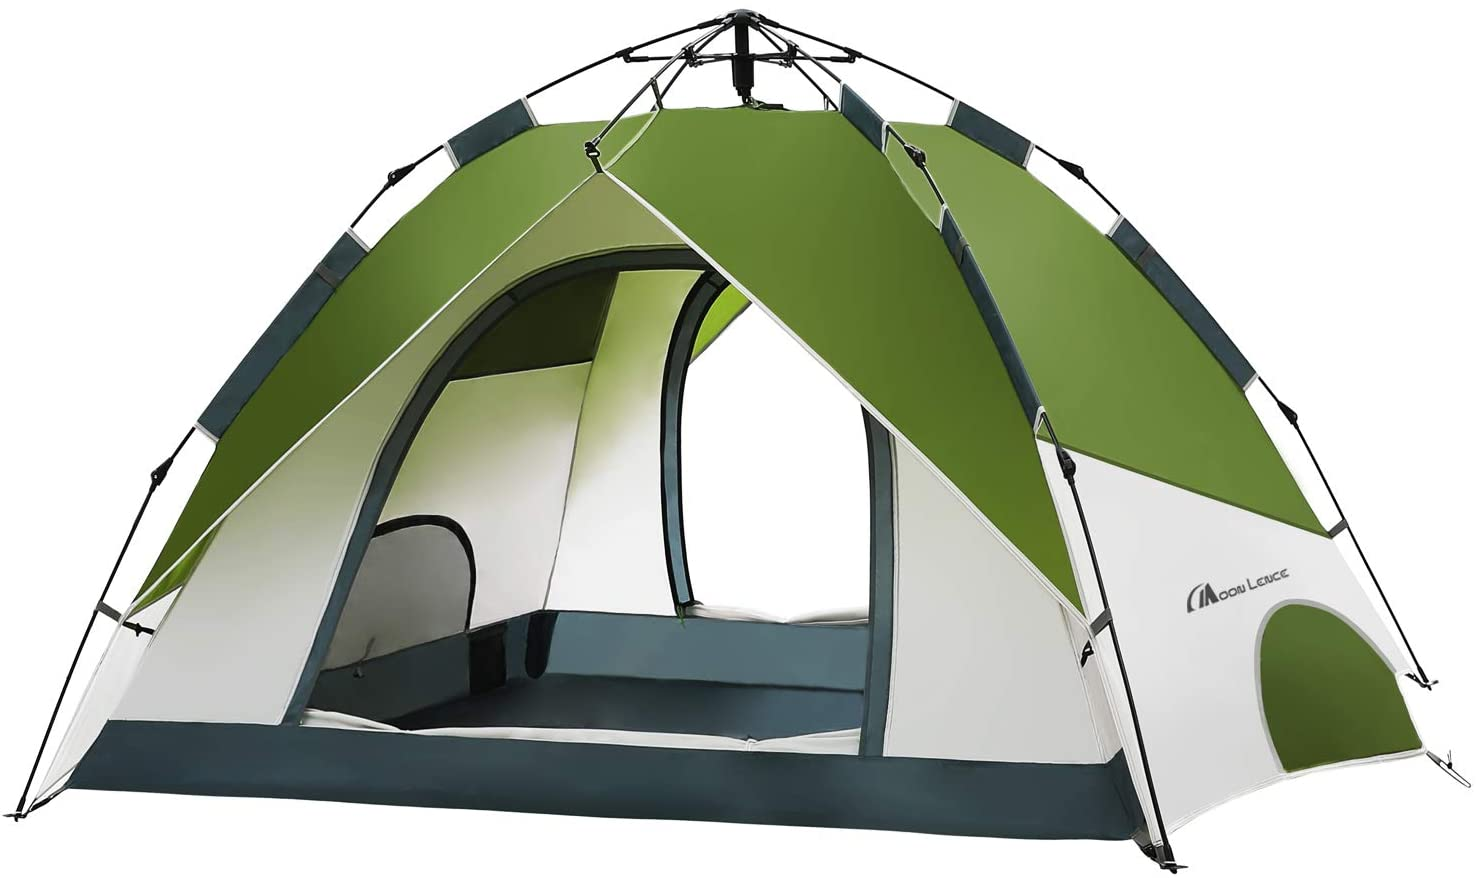 MOON LENCE Pop Up Family Tent 4 Person